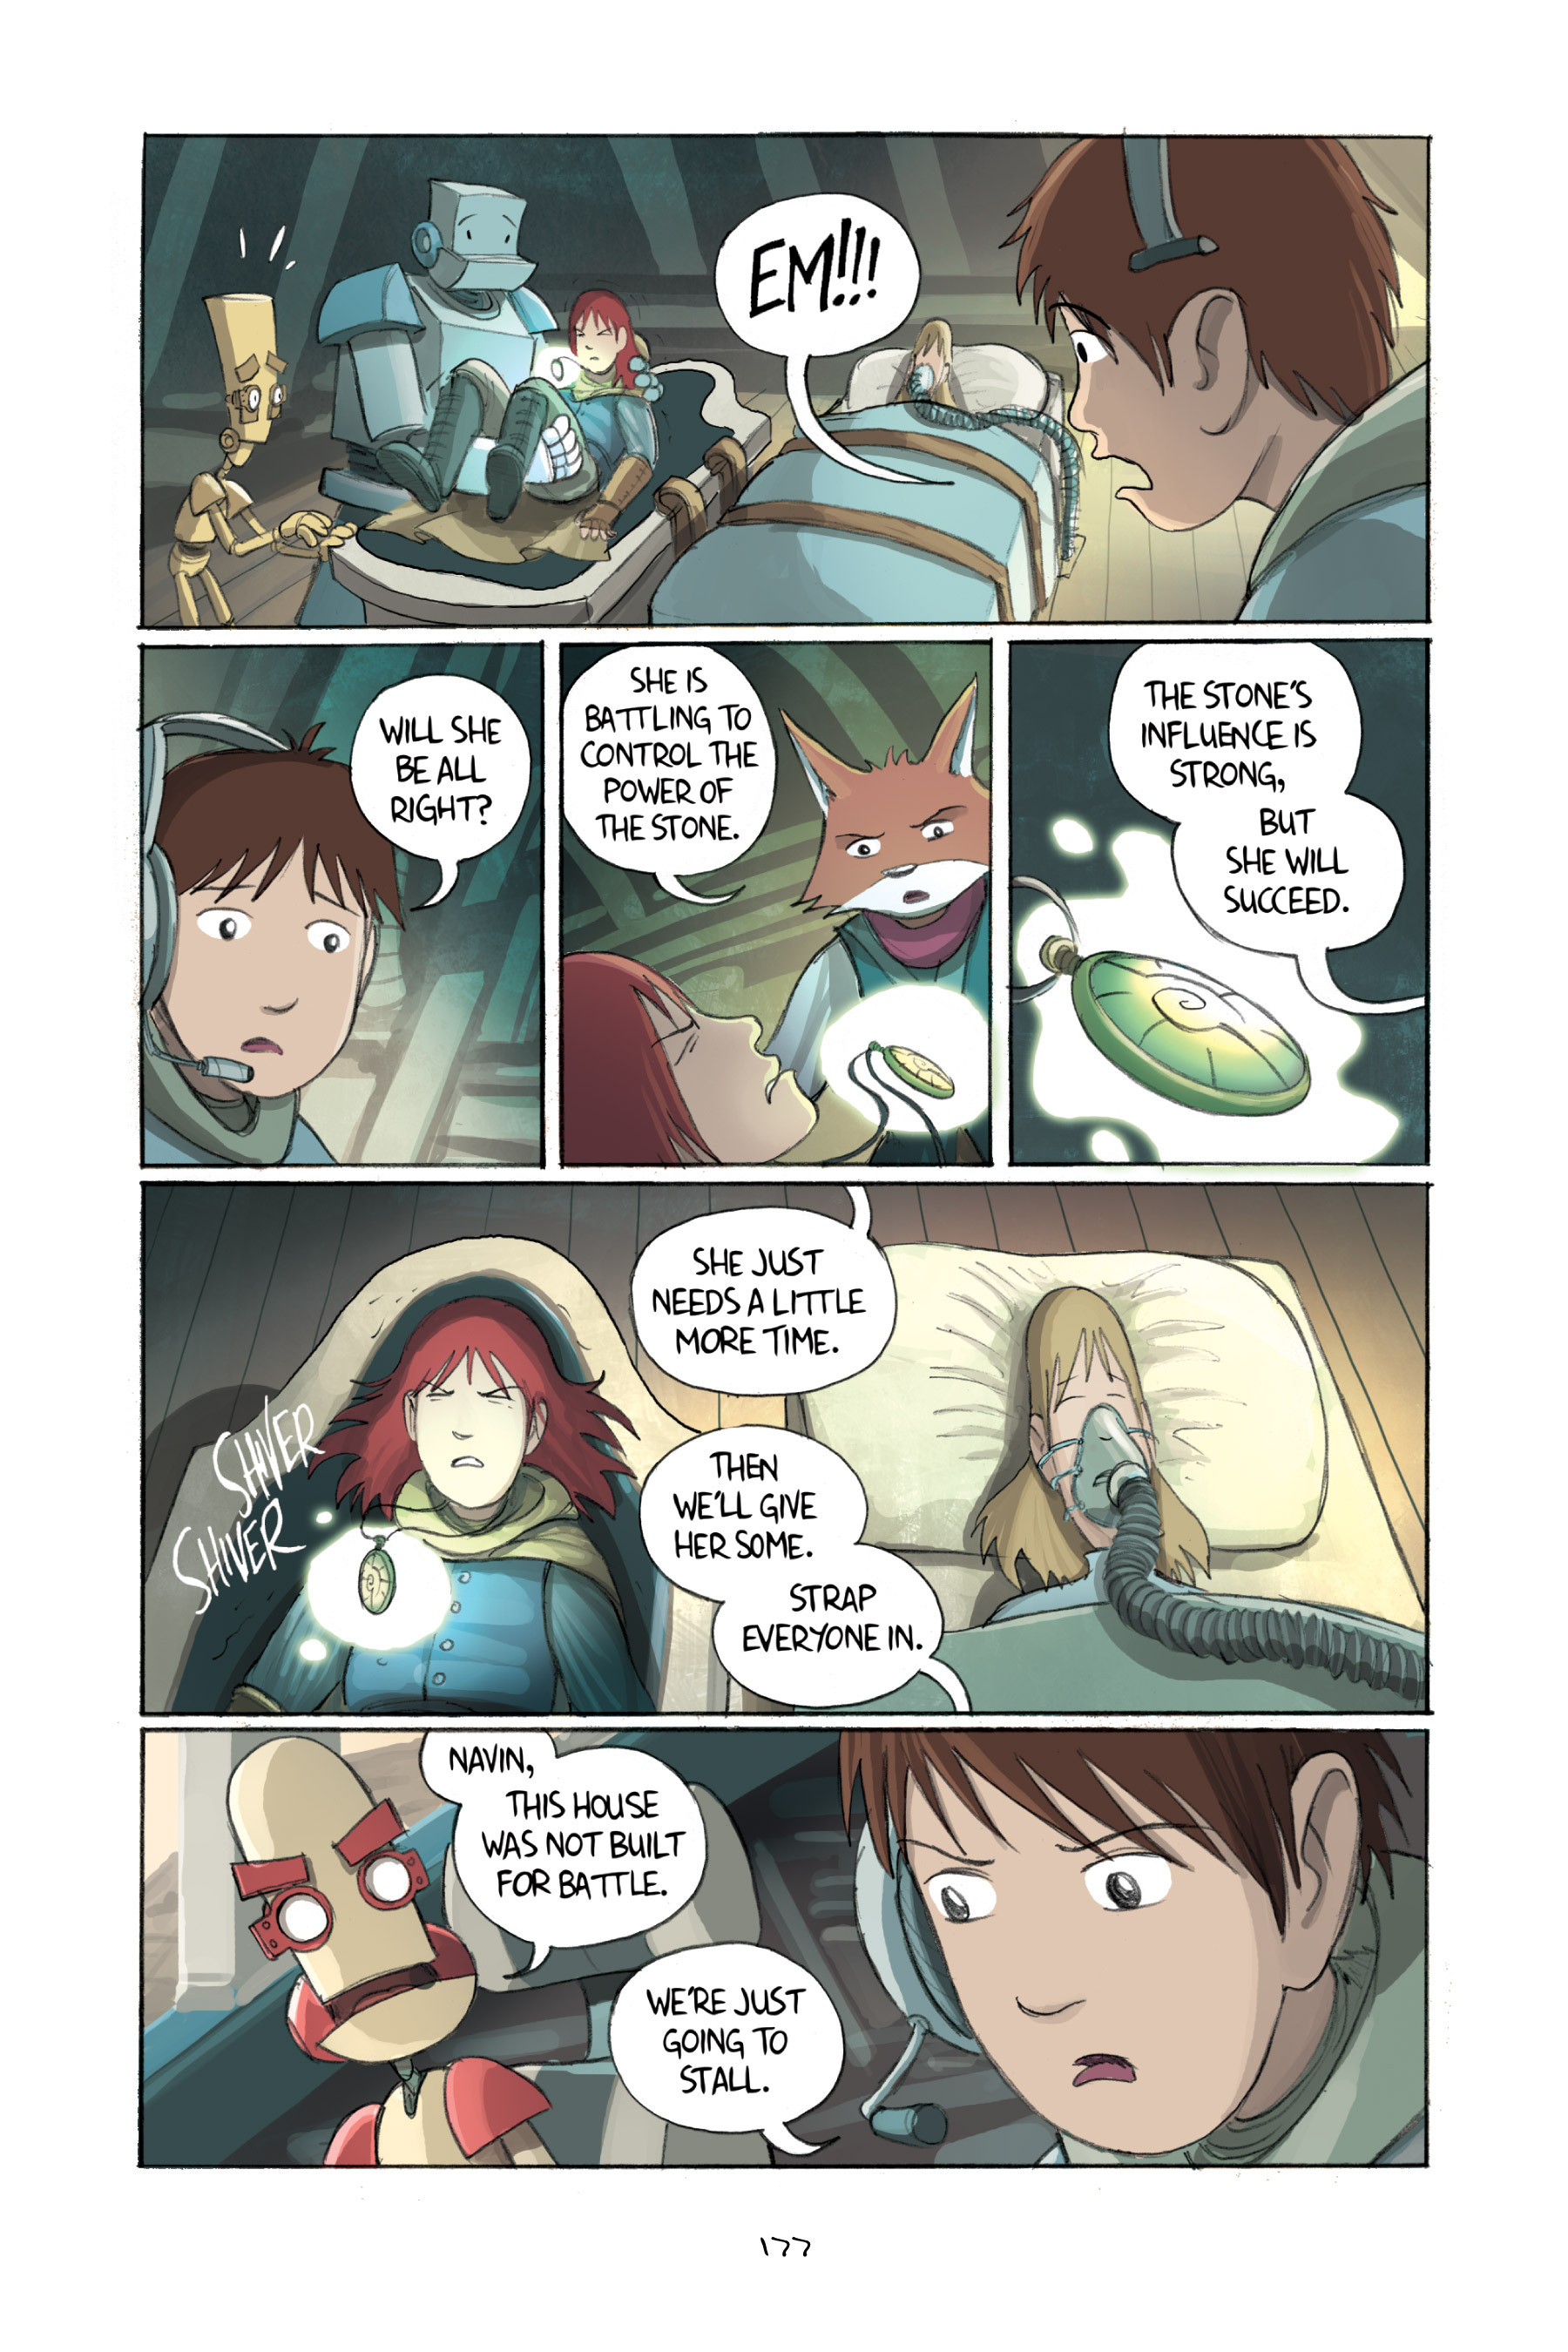 Read online Amulet comic -  Issue #2 - 176